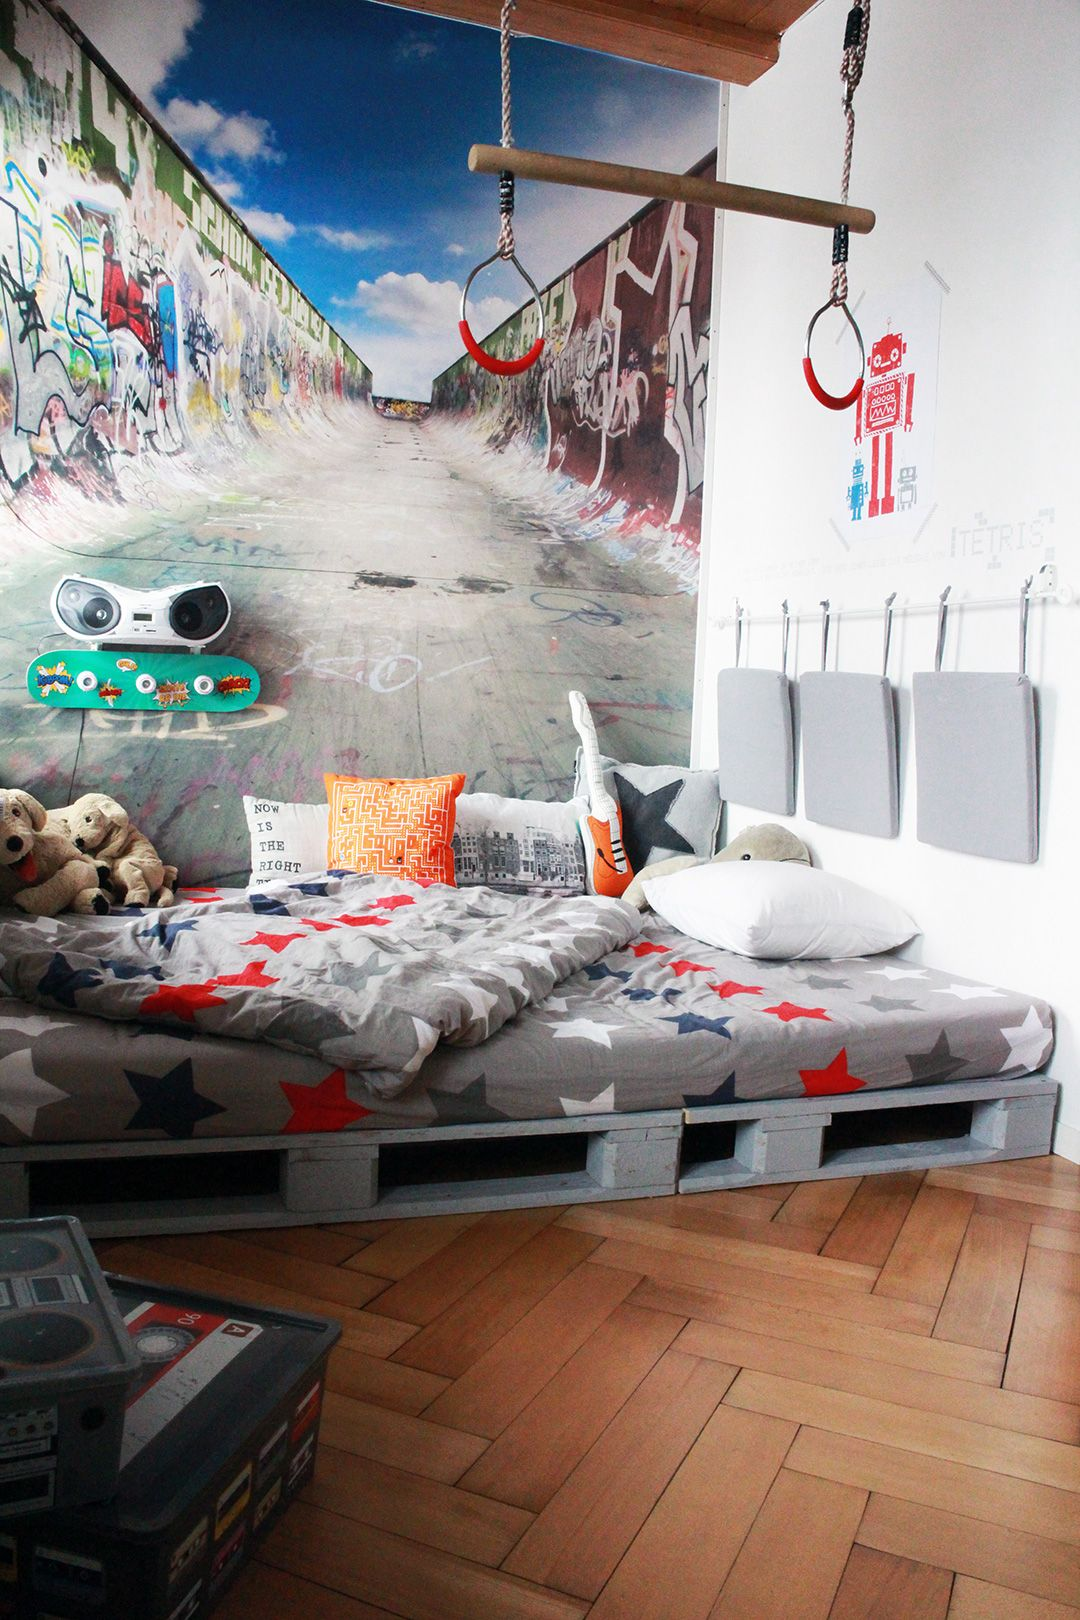 Schlafzimmer Justus Yves Room Justus Camere Ragazzo Camerette Und Camere